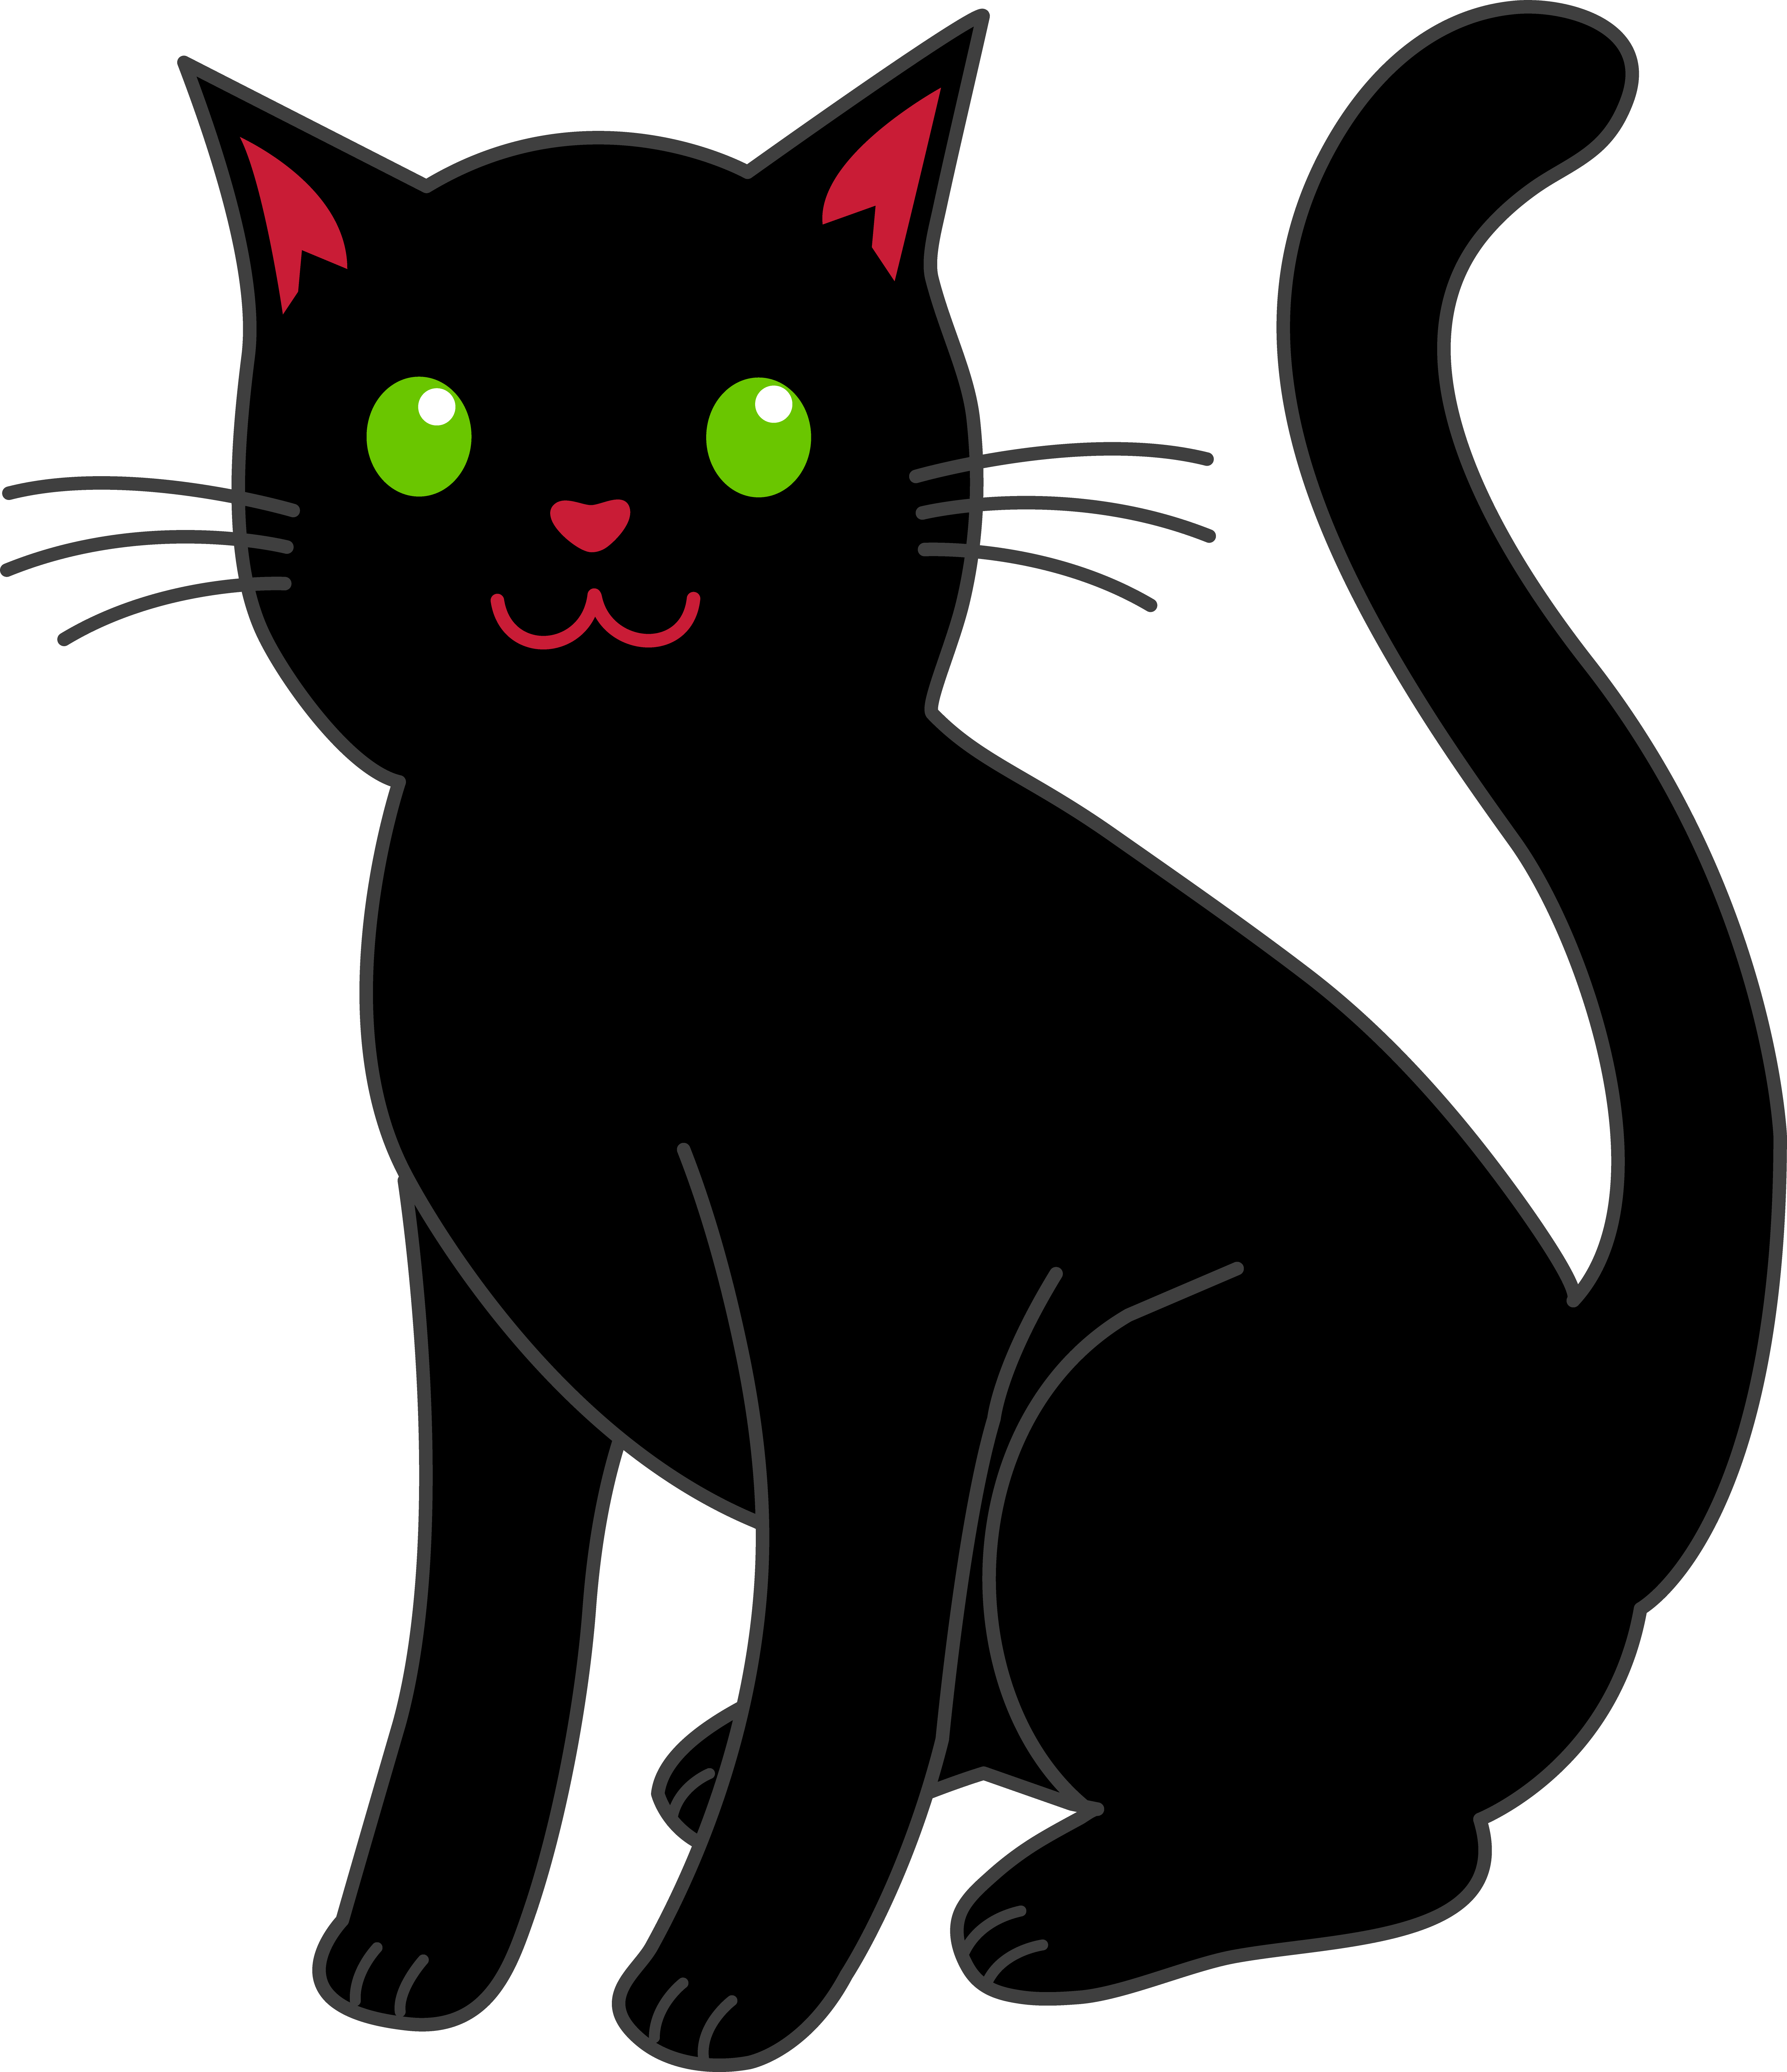 Cat clip art simple. Clipart black halloween free